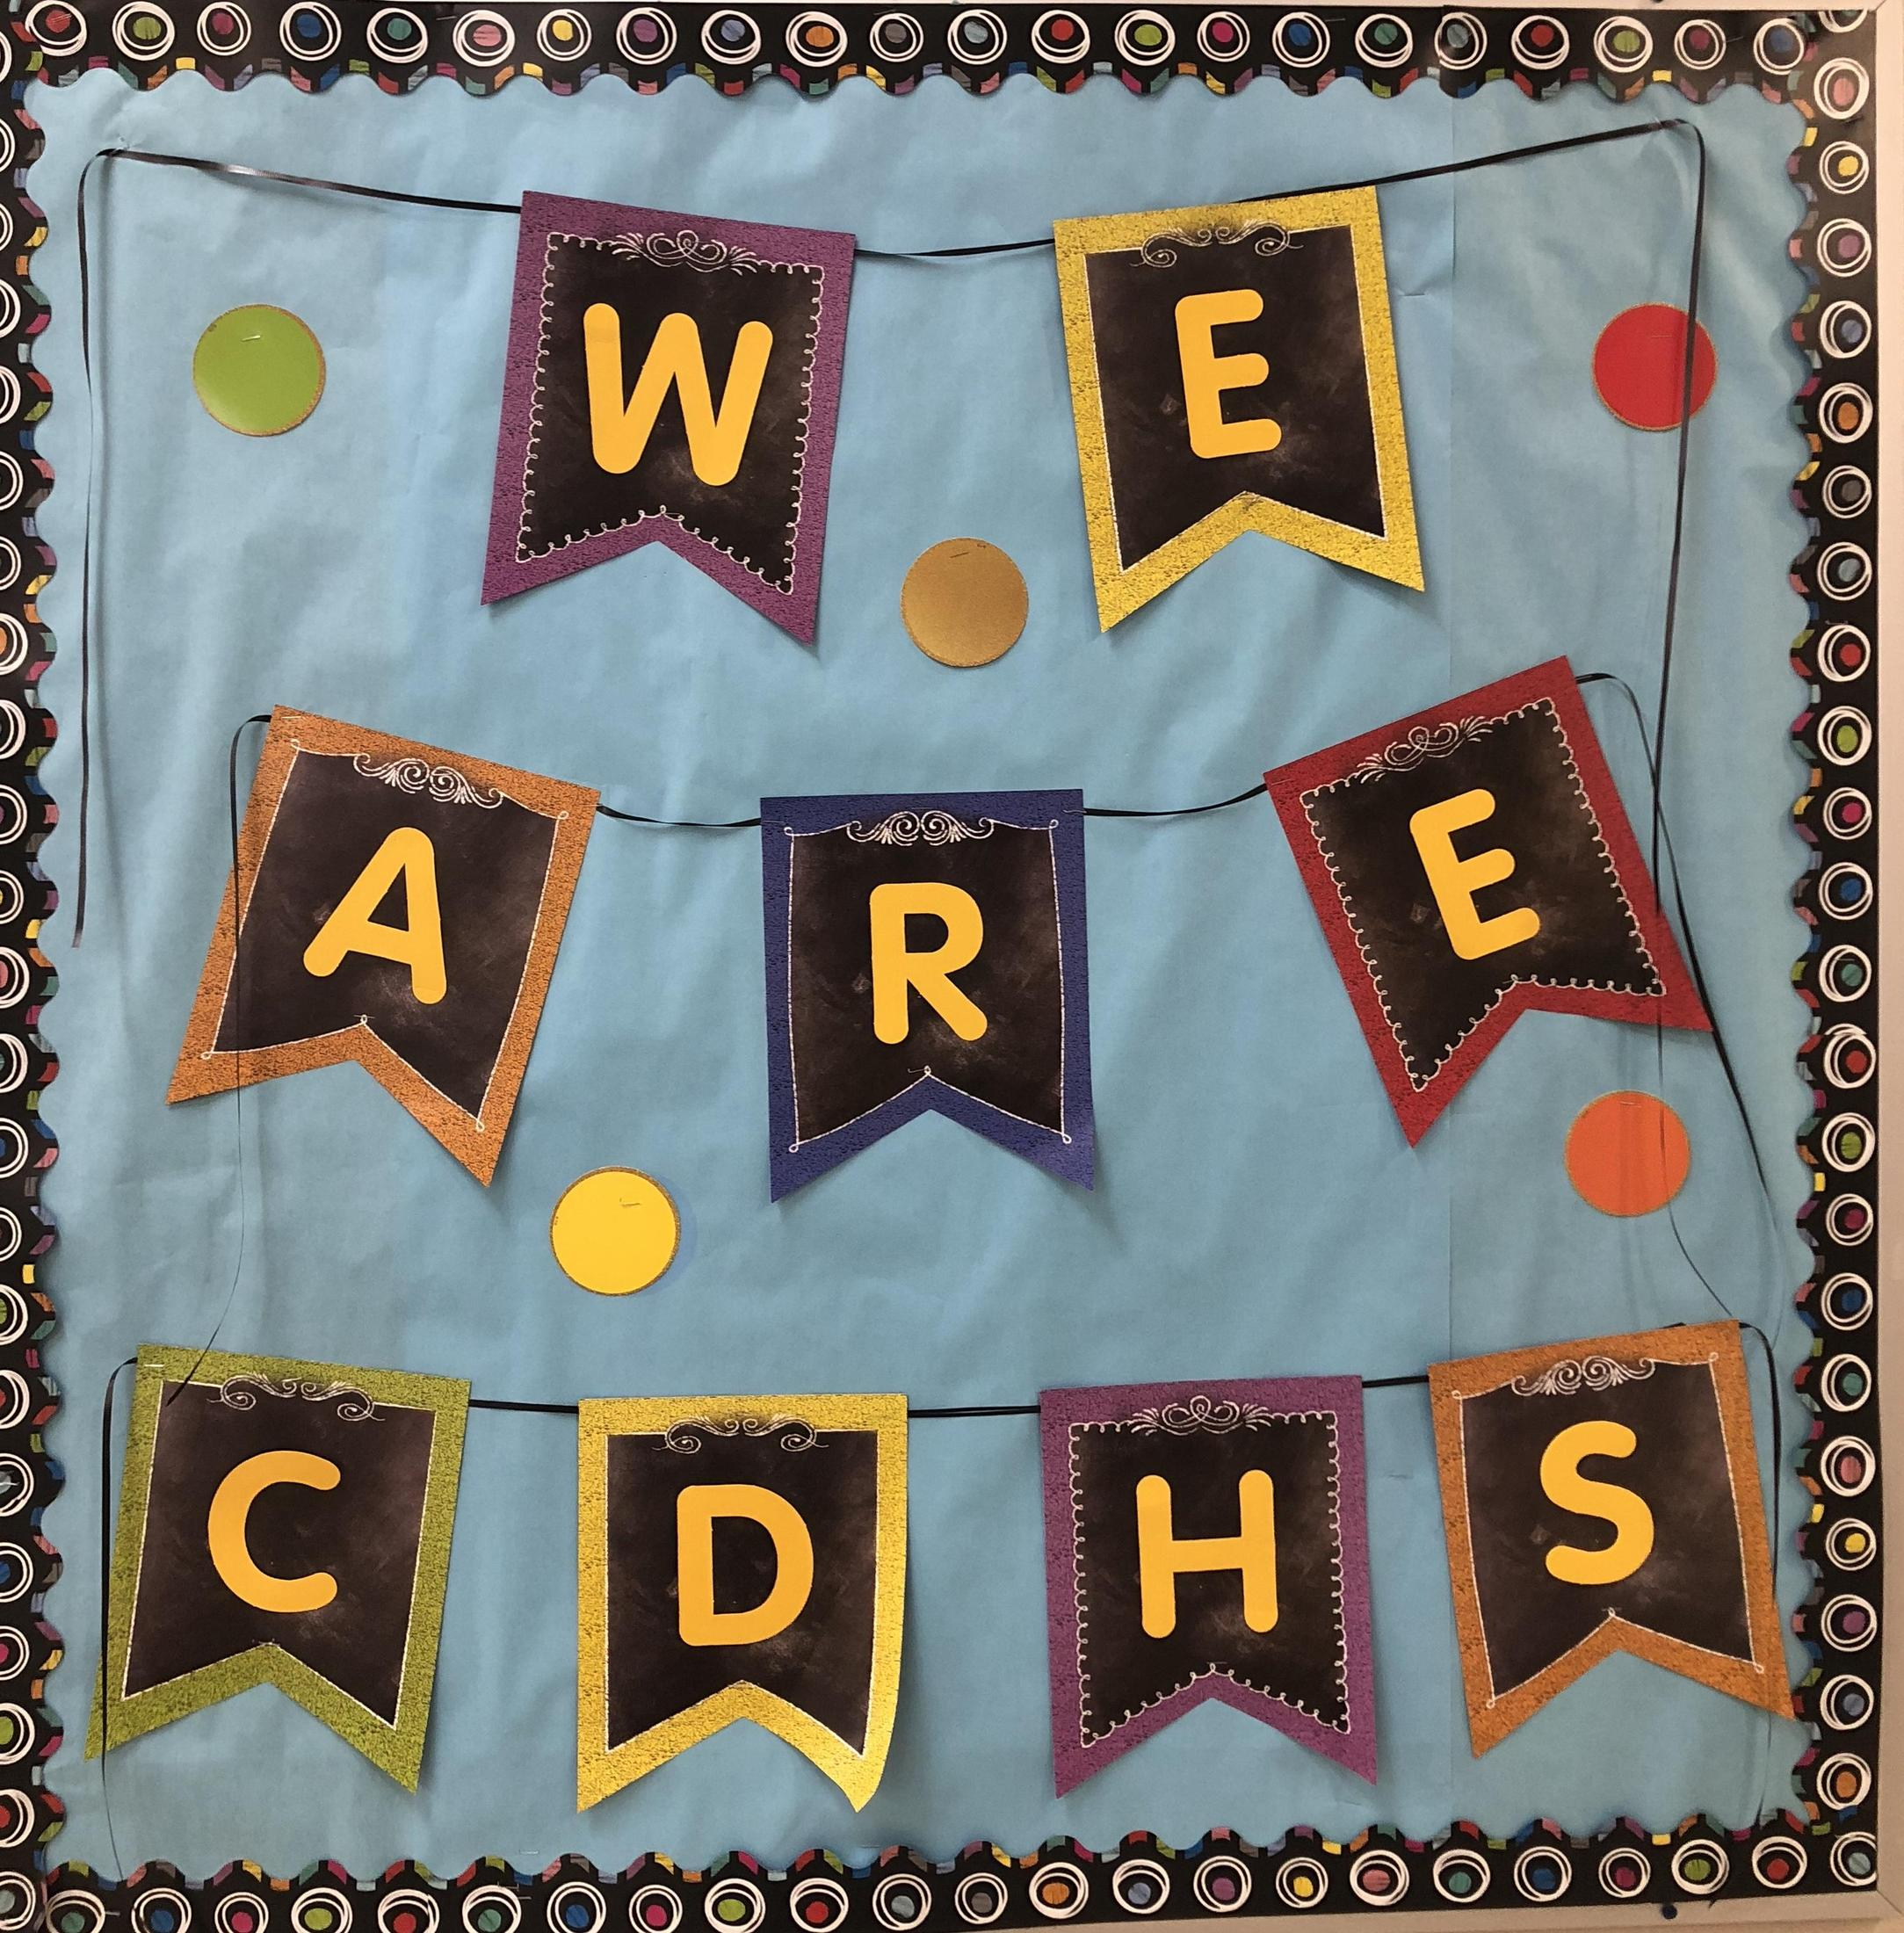 We Are CDHS